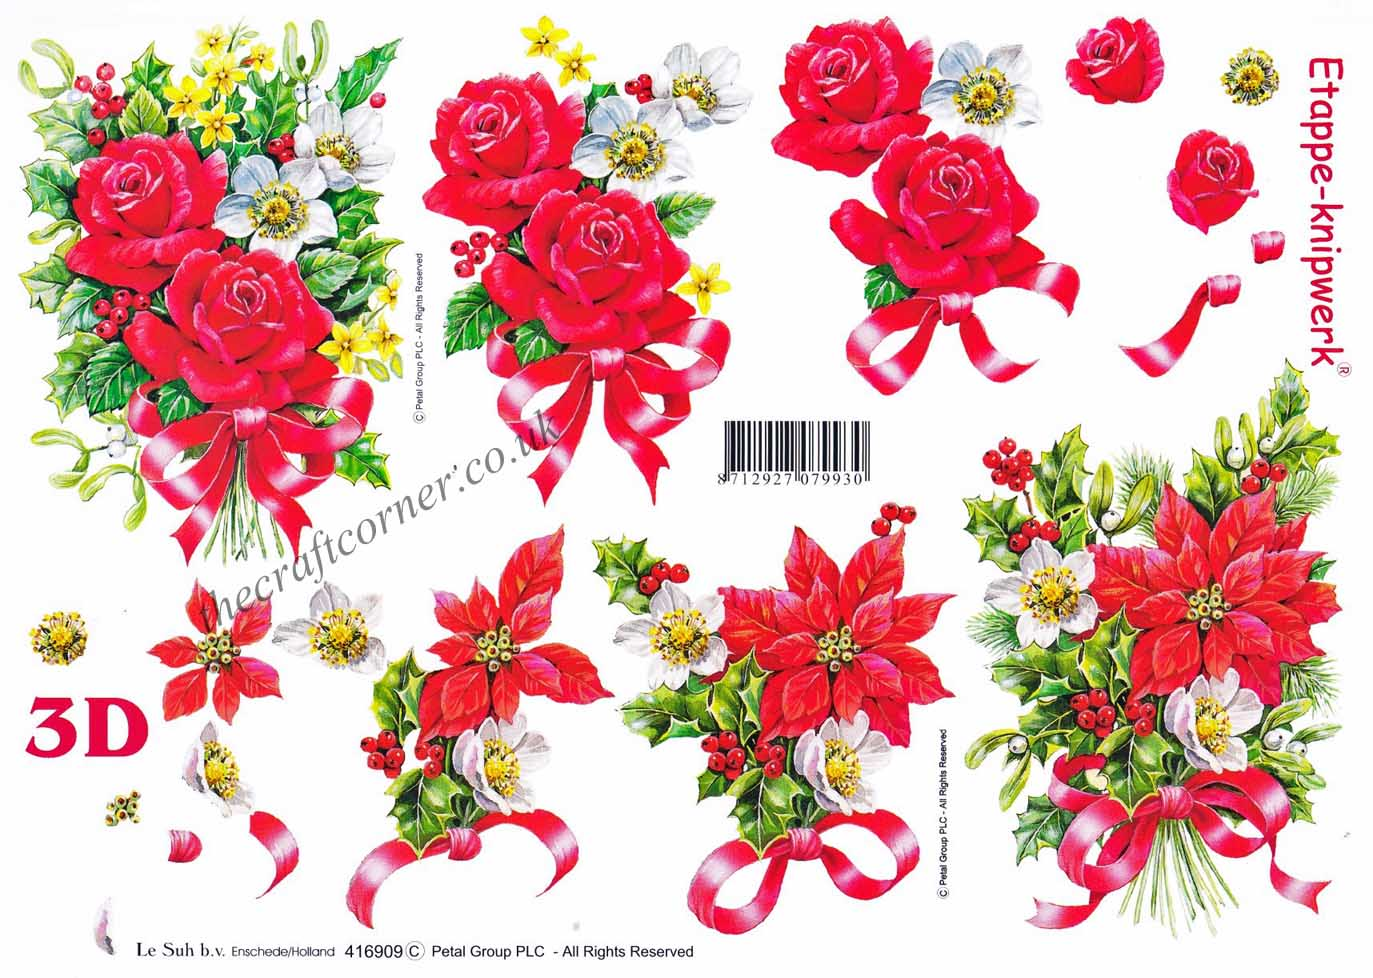 Christmas Flower Bouquets and Ribbon Designs 3d Decoupage Sheet